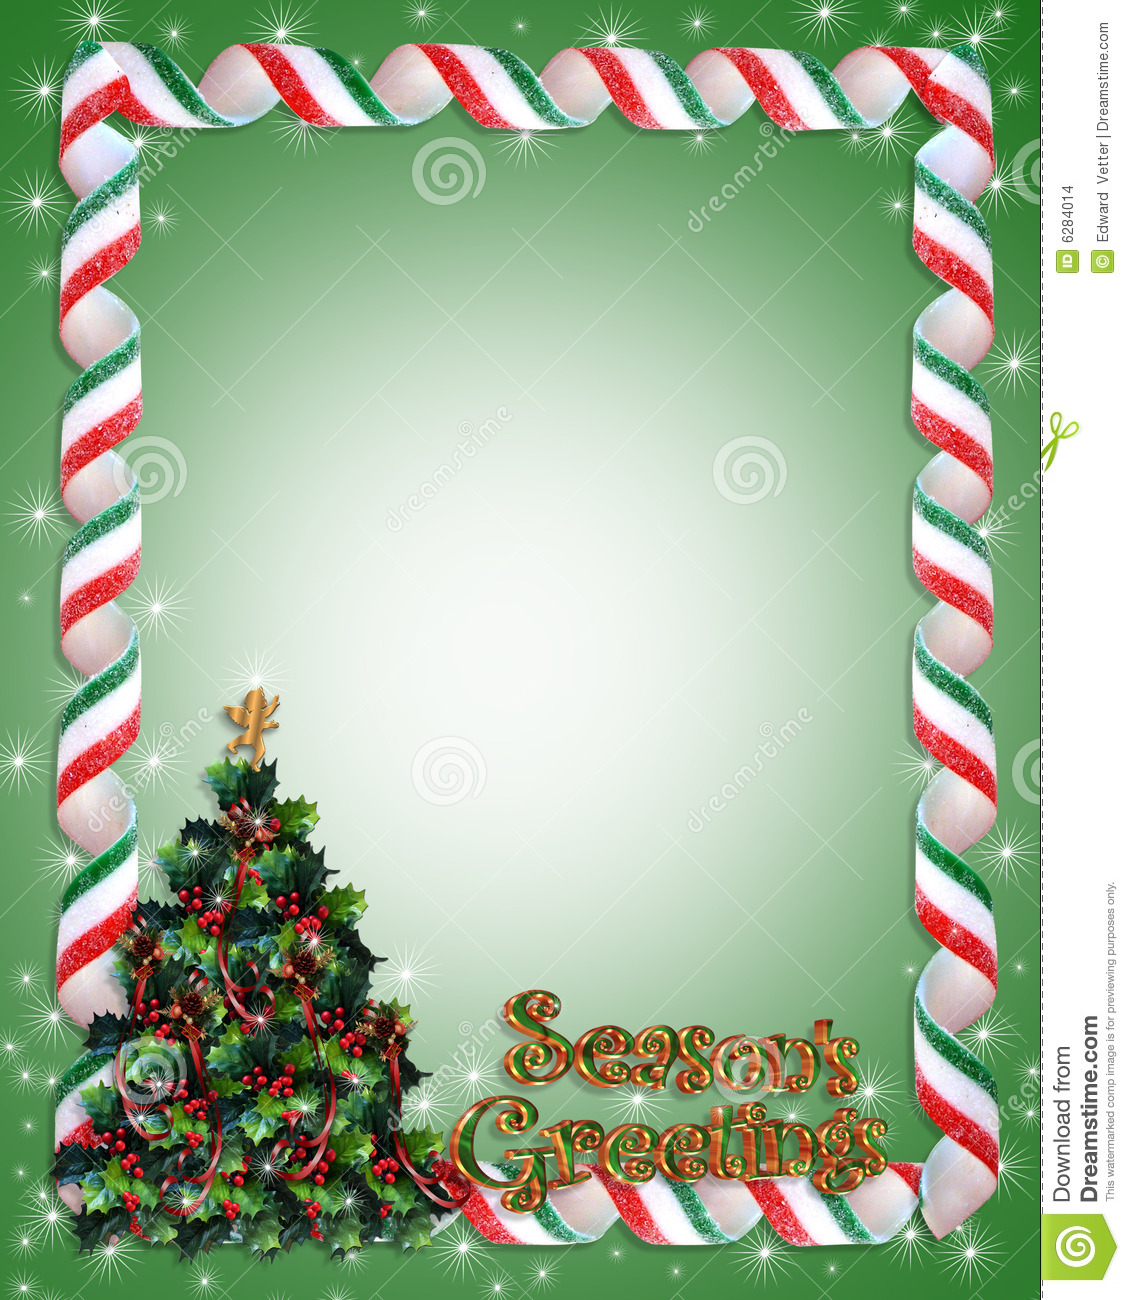 Christmas Frame Border – Merry Christmas And Happy New Year 2018